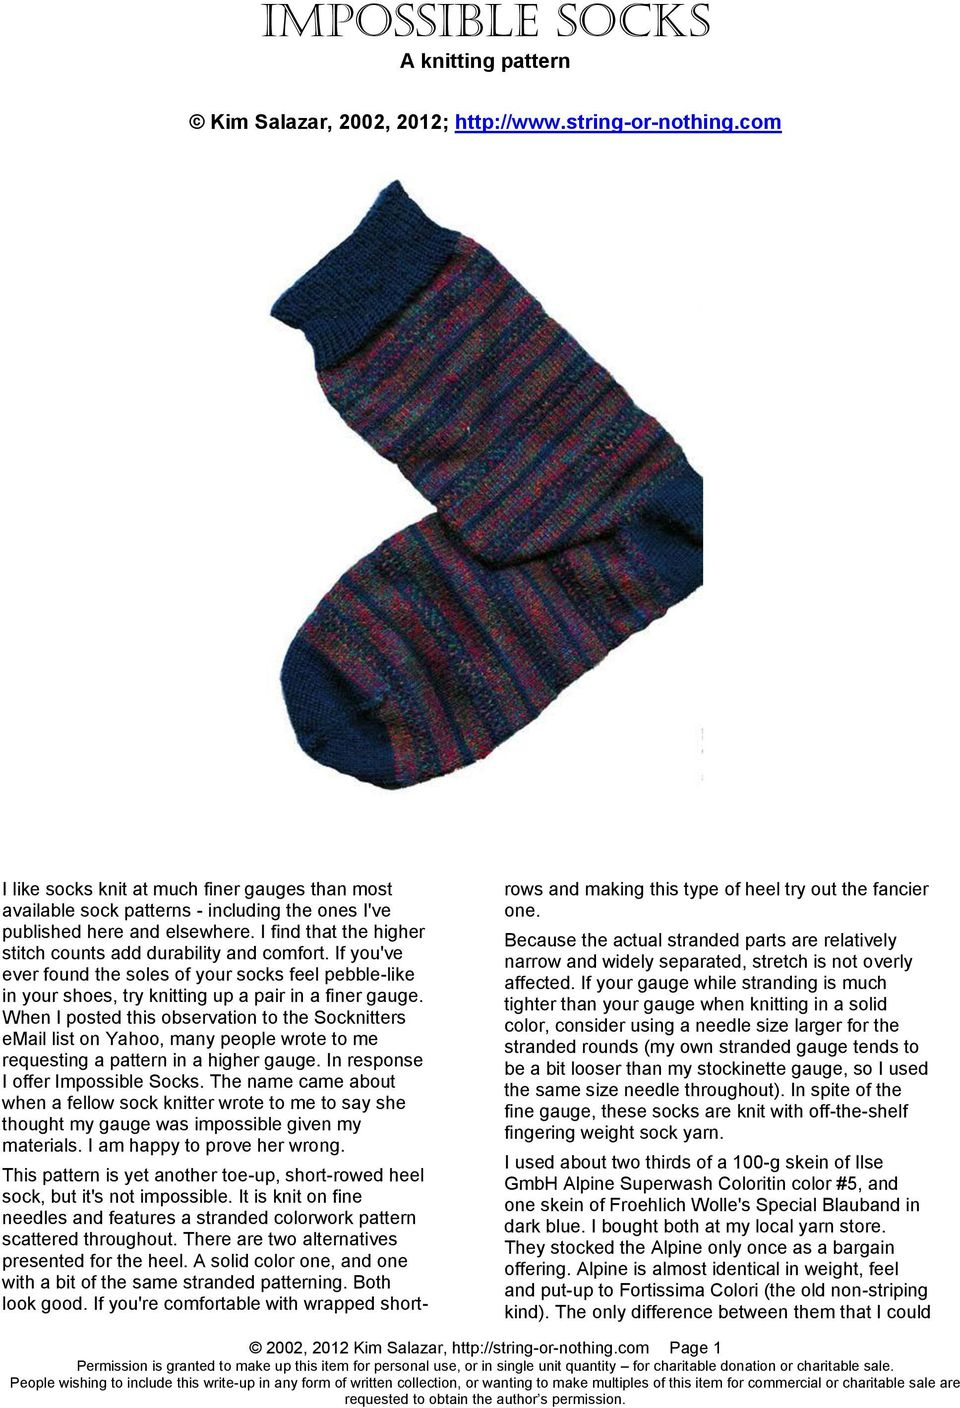 If you've ever found the soles of your socks feel pebble-like in your shoes, try knitting up a pair in a finer gauge.